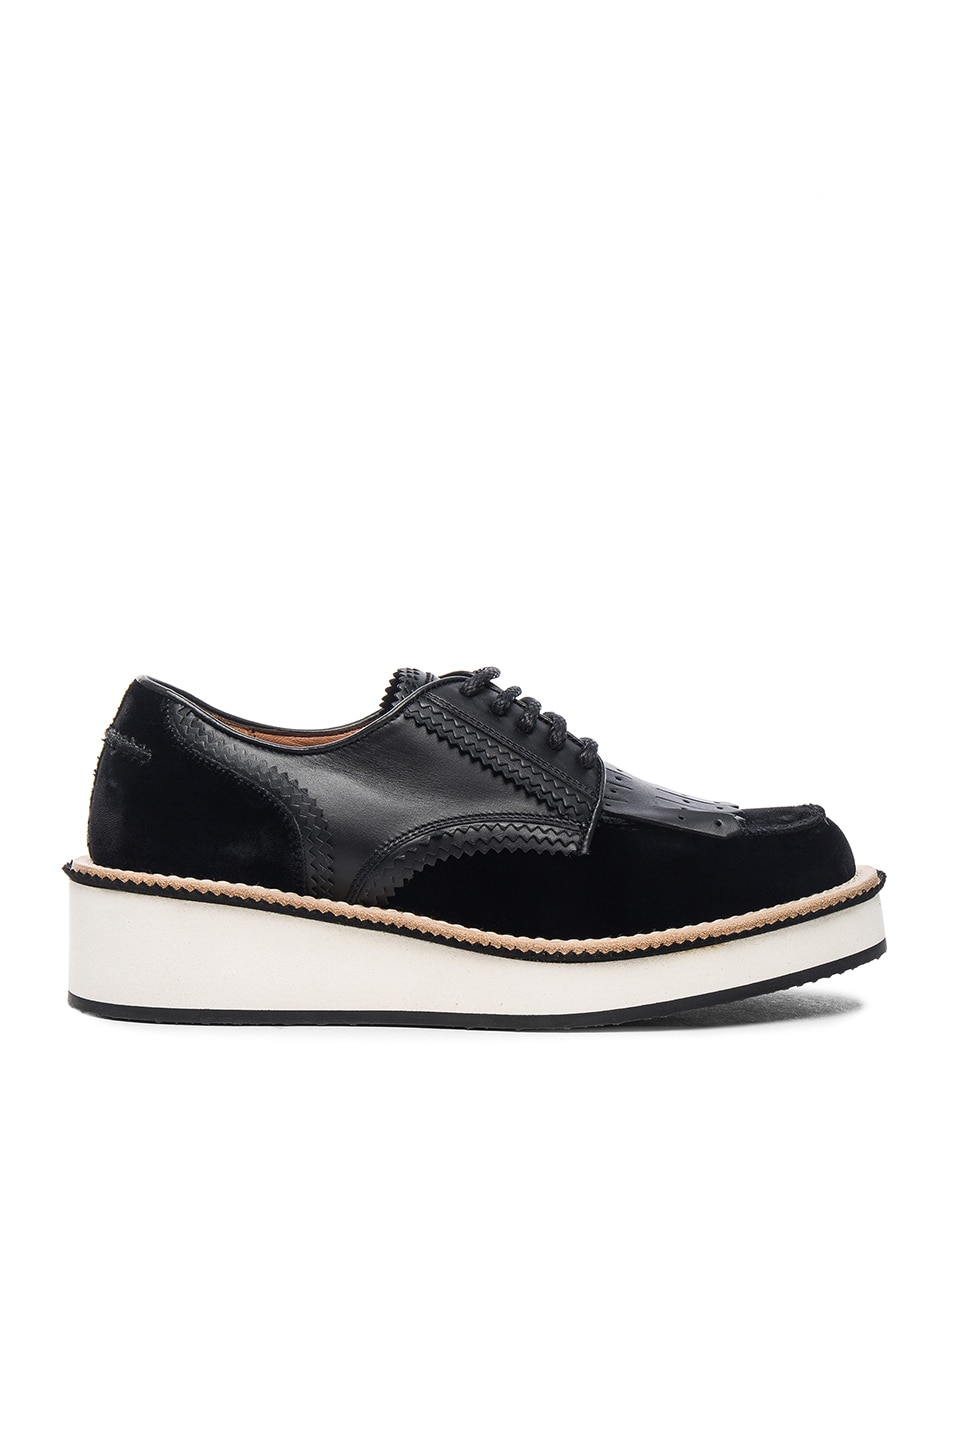 Image 1 of Givenchy Pavina Rottweiler Leather & Velvet Derbies in Black